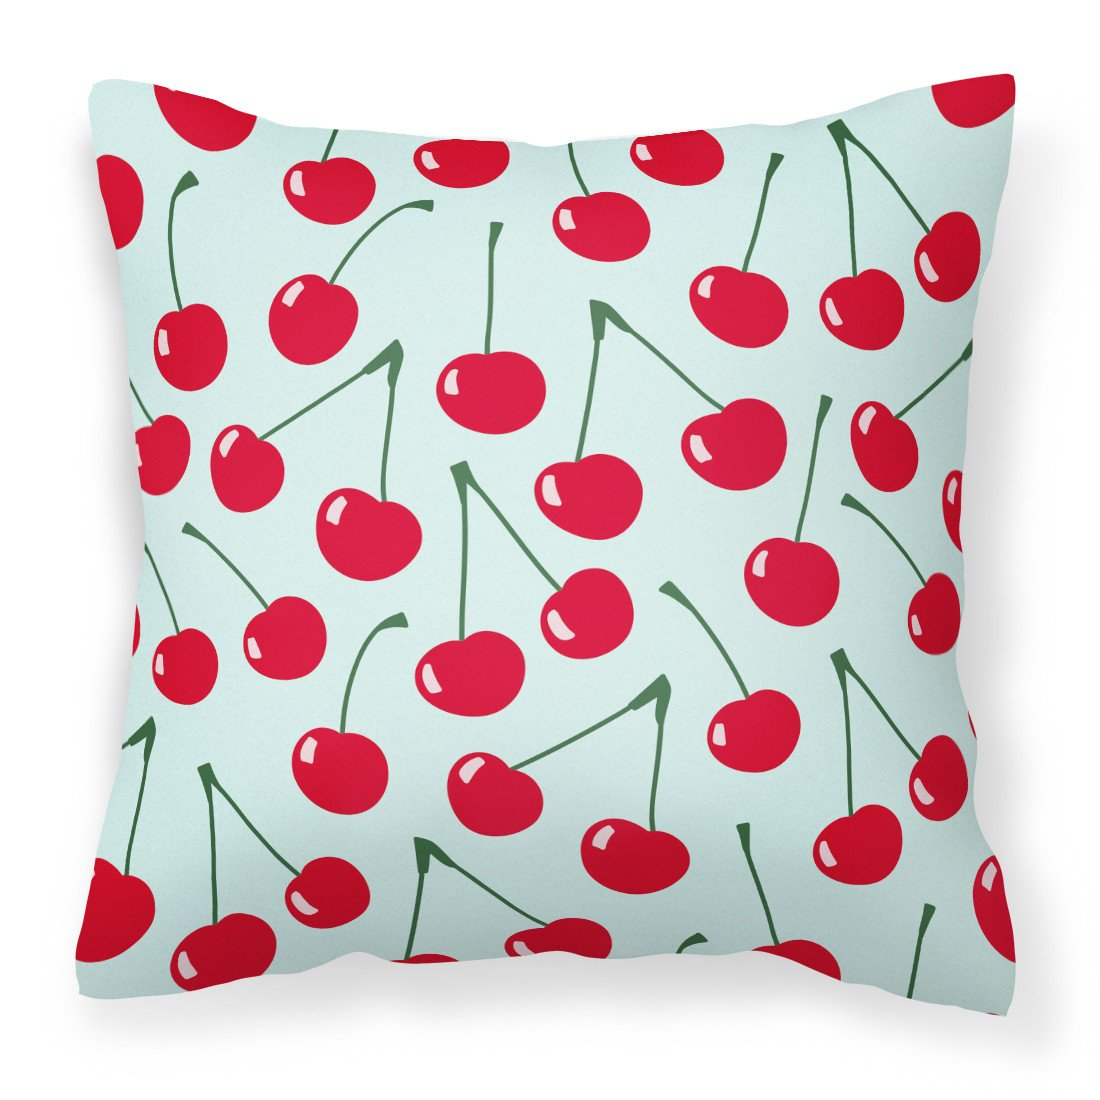 Cherries on Blue Fabric Decorative Pillow BB5148PW1818 by Caroline's Treasures